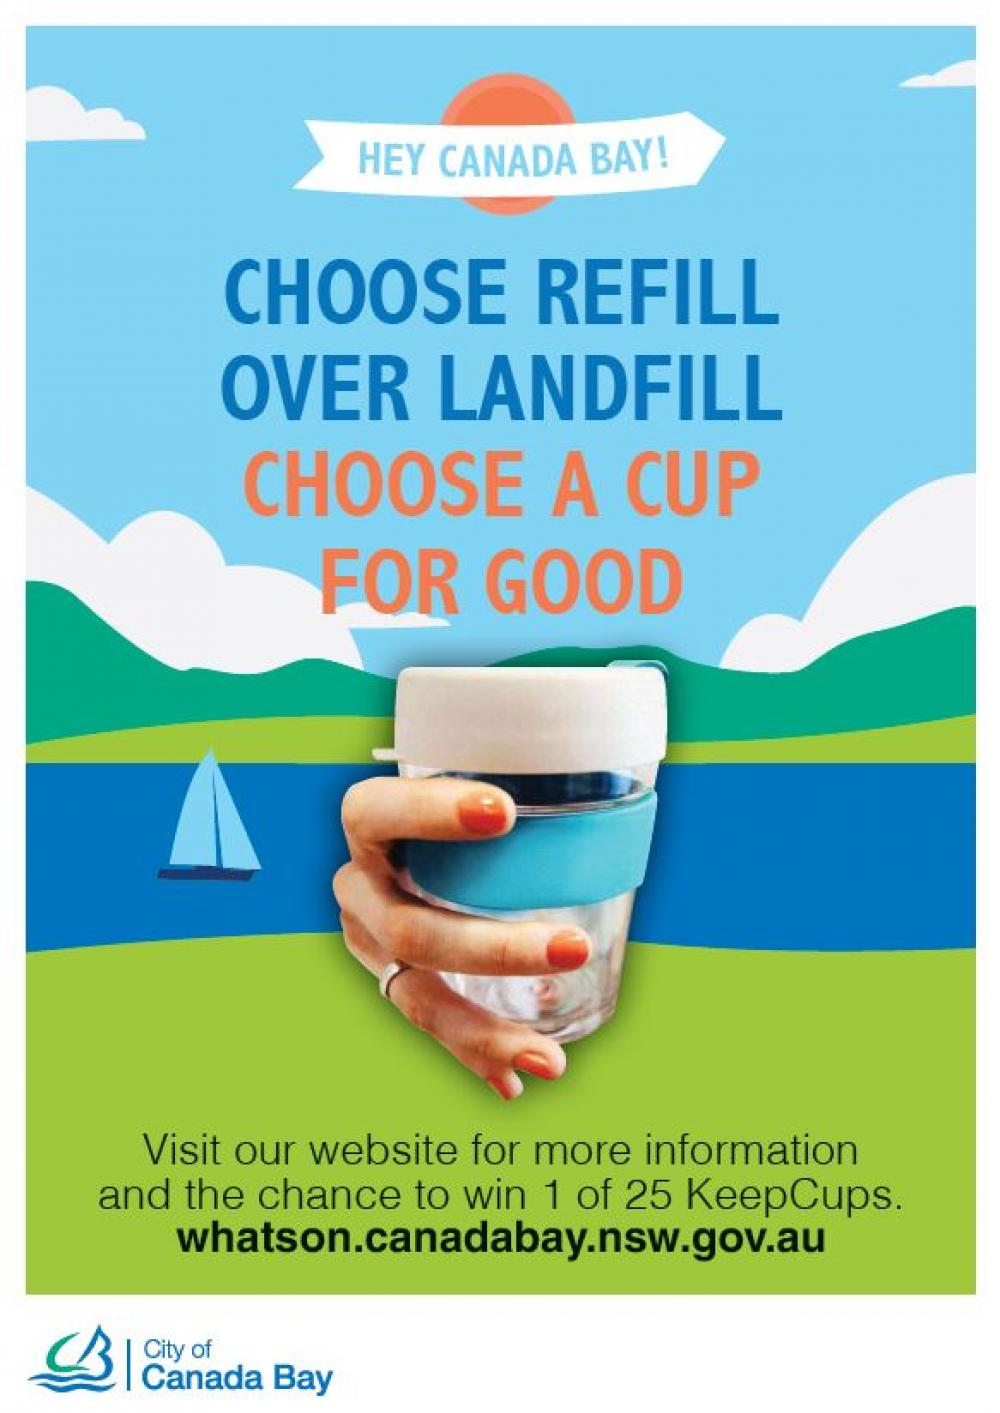 Choose refill over landfill and win!